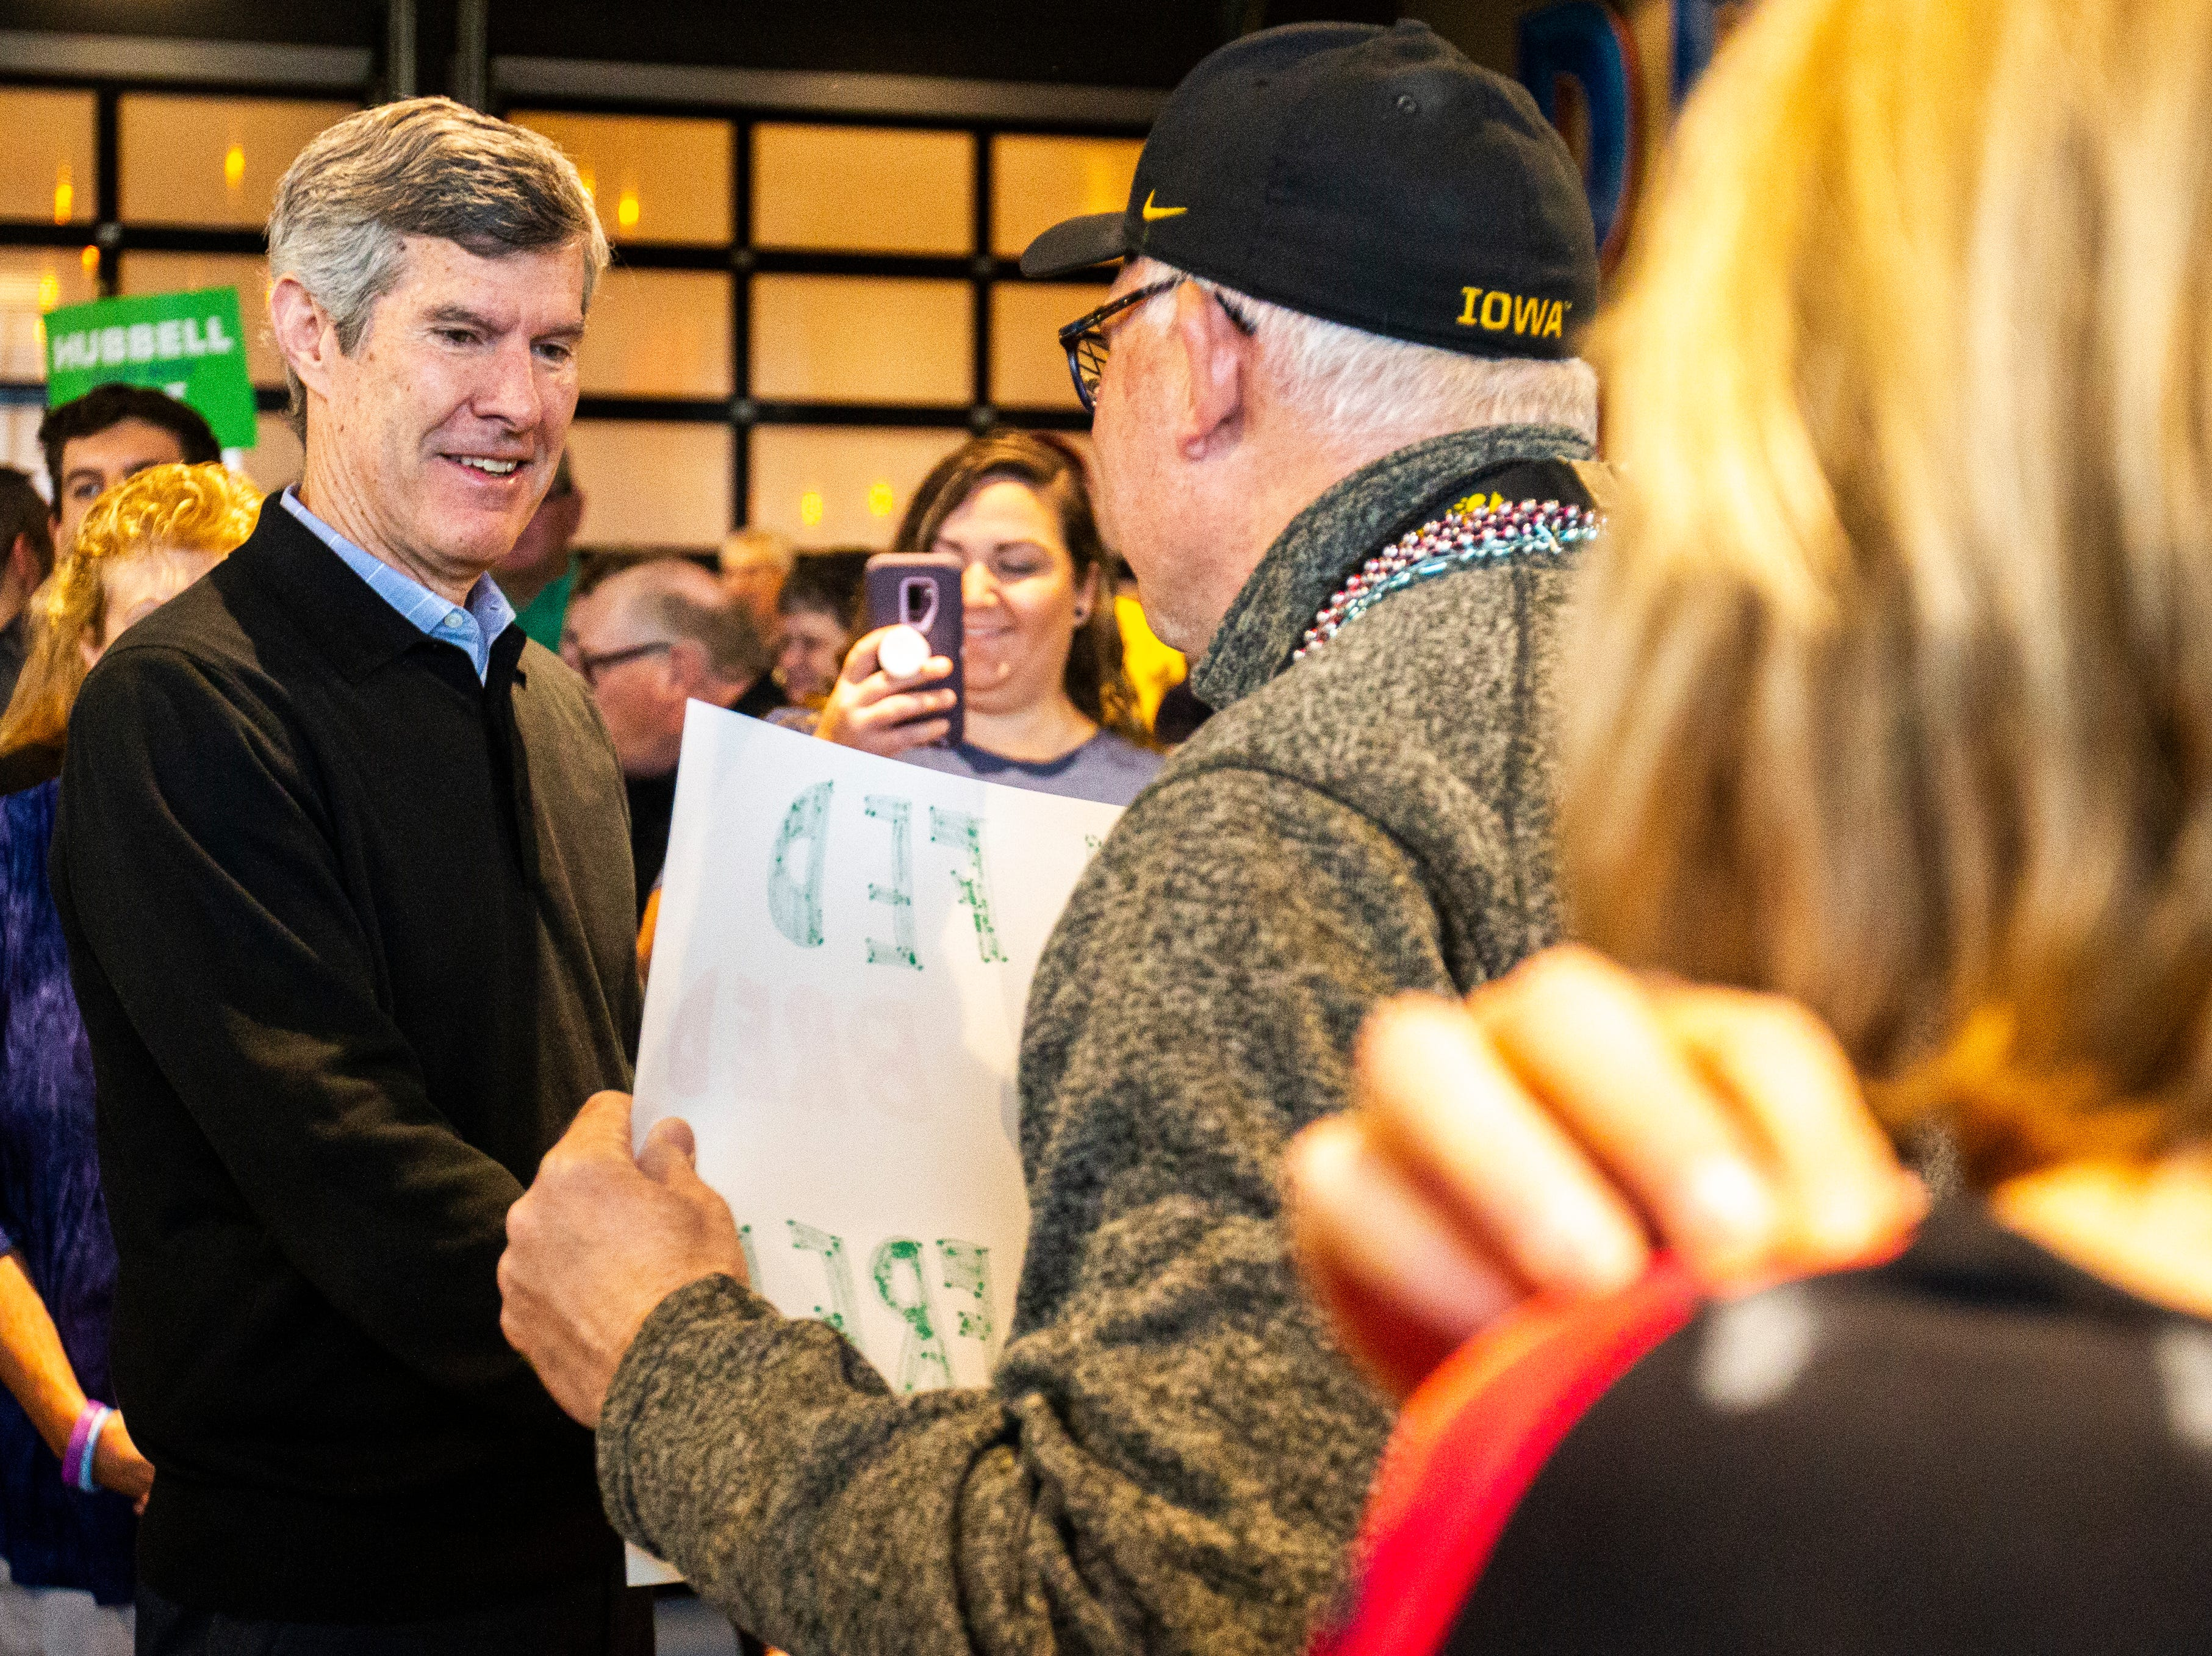 Fred Hubbell, Iowa Democratic candidate for governor, shakes hands with supporters during a rally on Sunday, Nov. 4, 2018, at Big Grove Brewery in Iowa City.